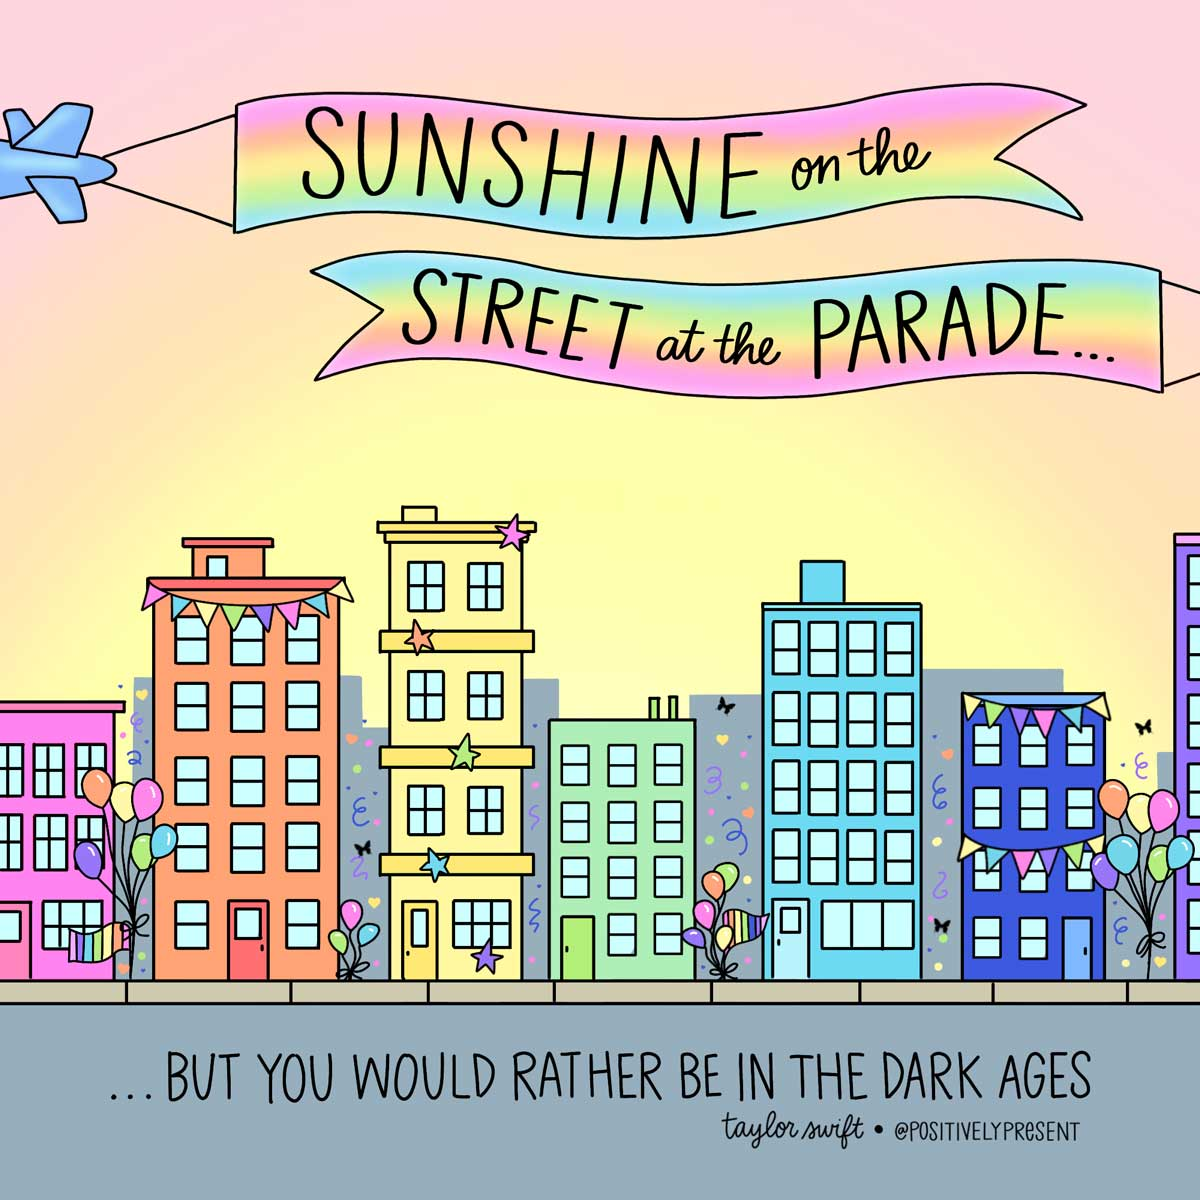 sunshine on the street taylor swift lyrics on drawing of colorful buildings.